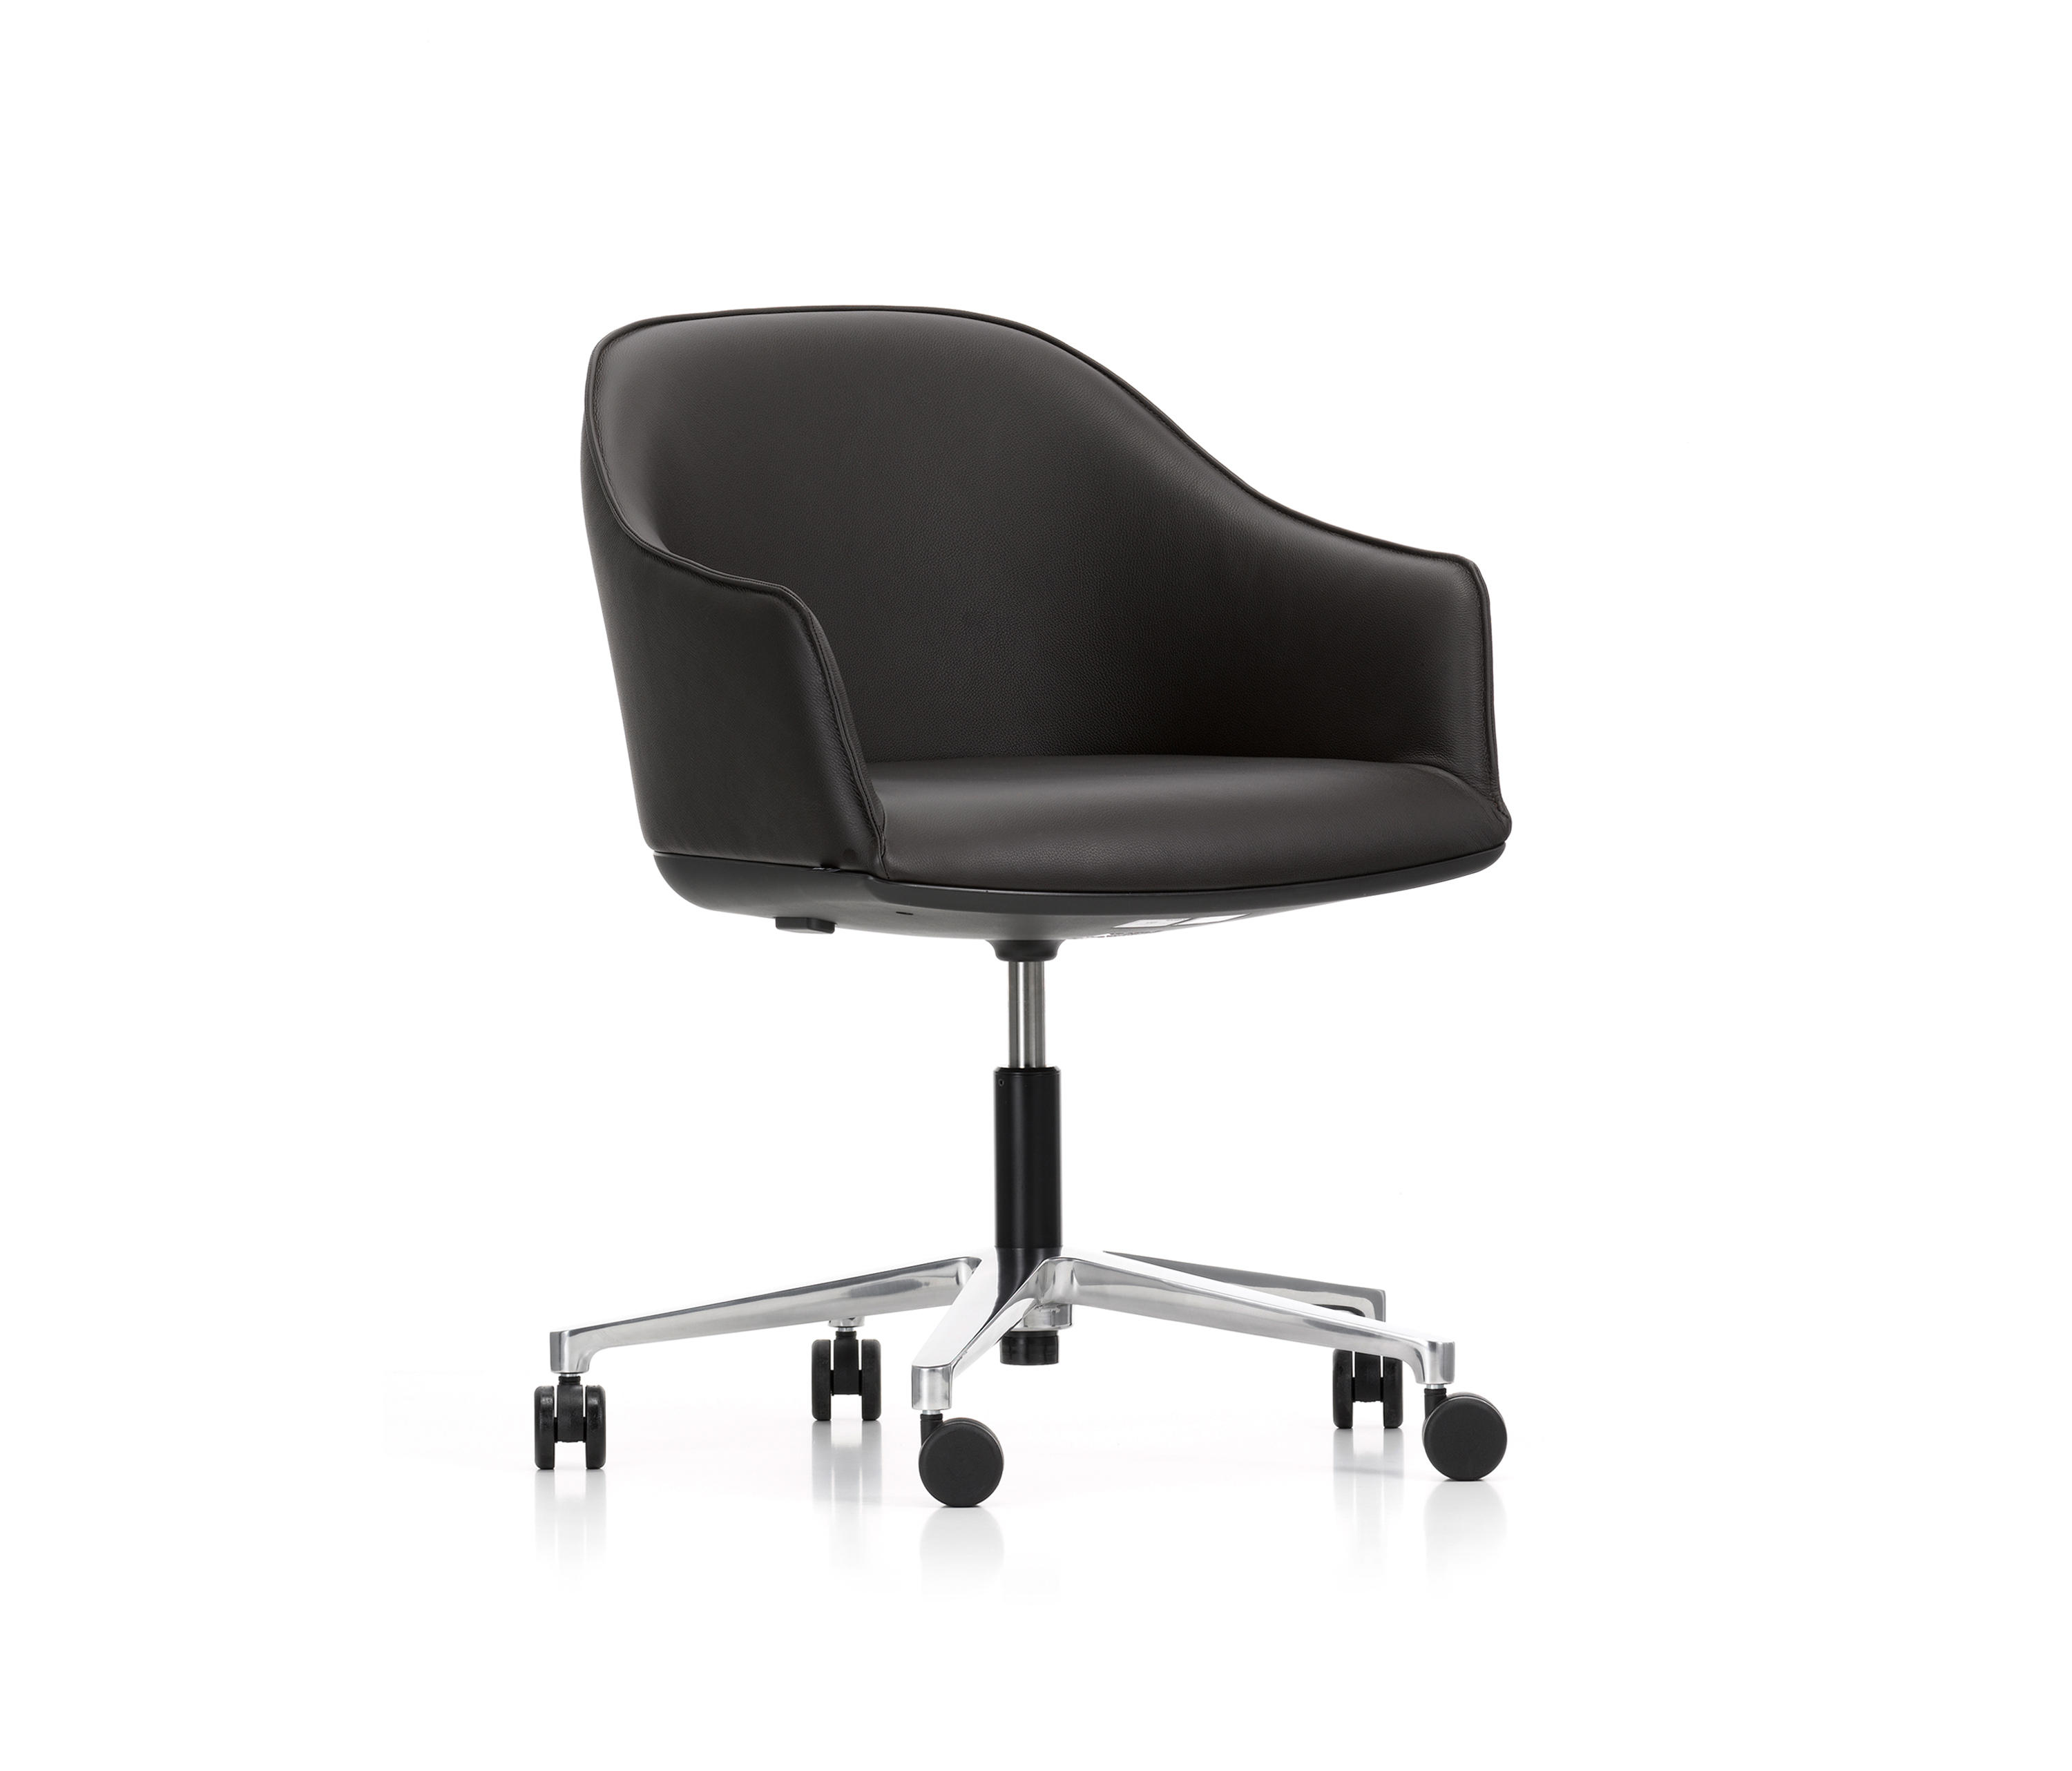 Vitra Miami Design District Softshell Chair Chairs From Vitra Architonic